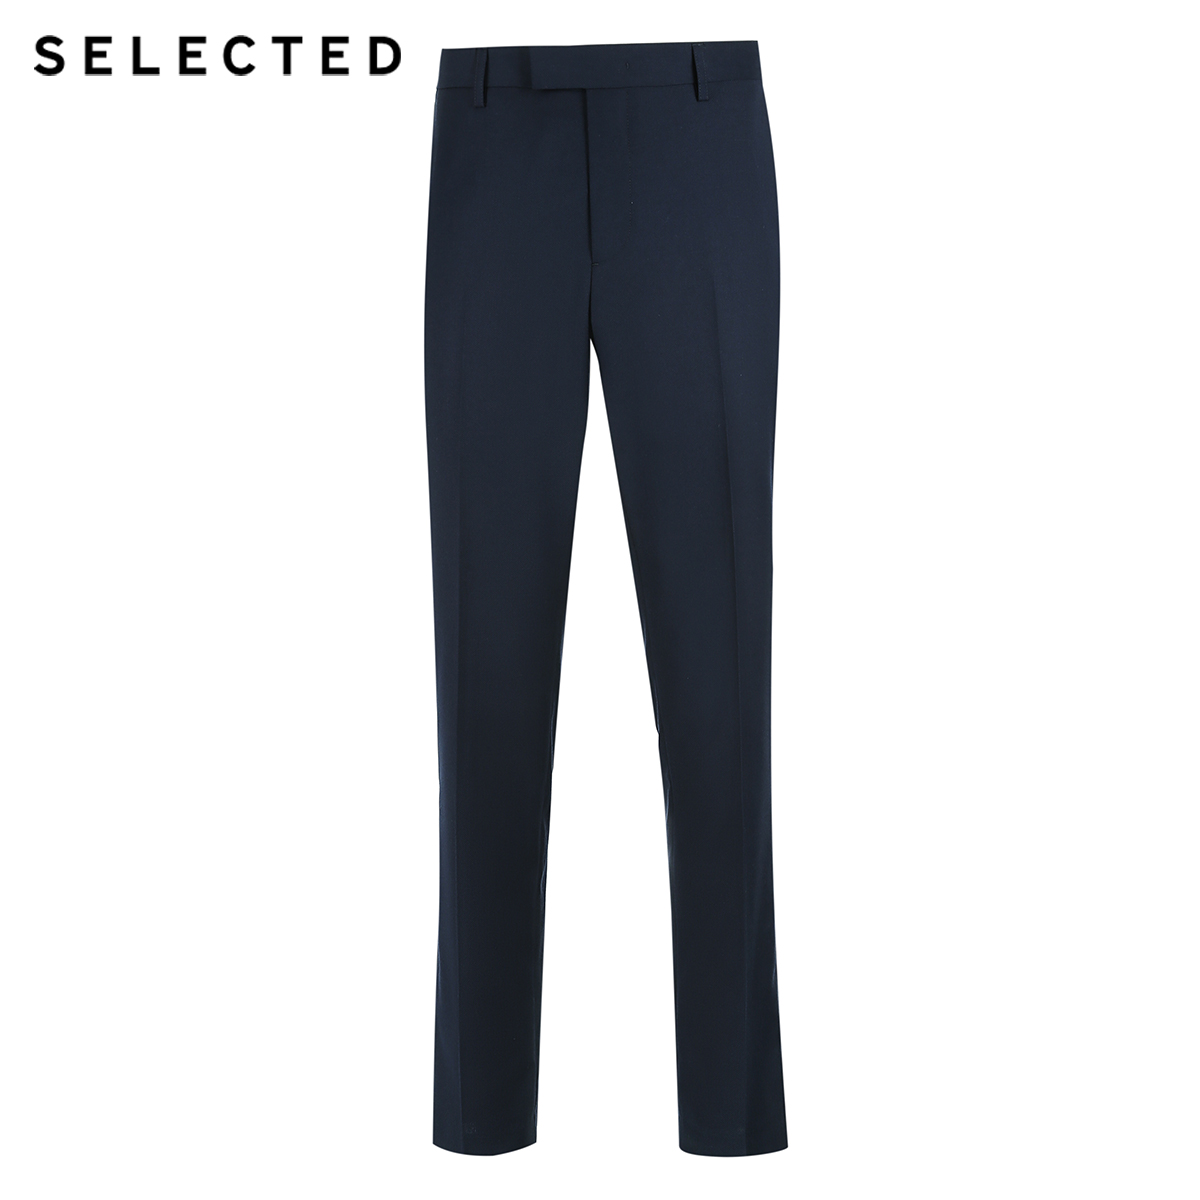 SELECTED new men's simple solid color business series regular fit pants T|41836A509